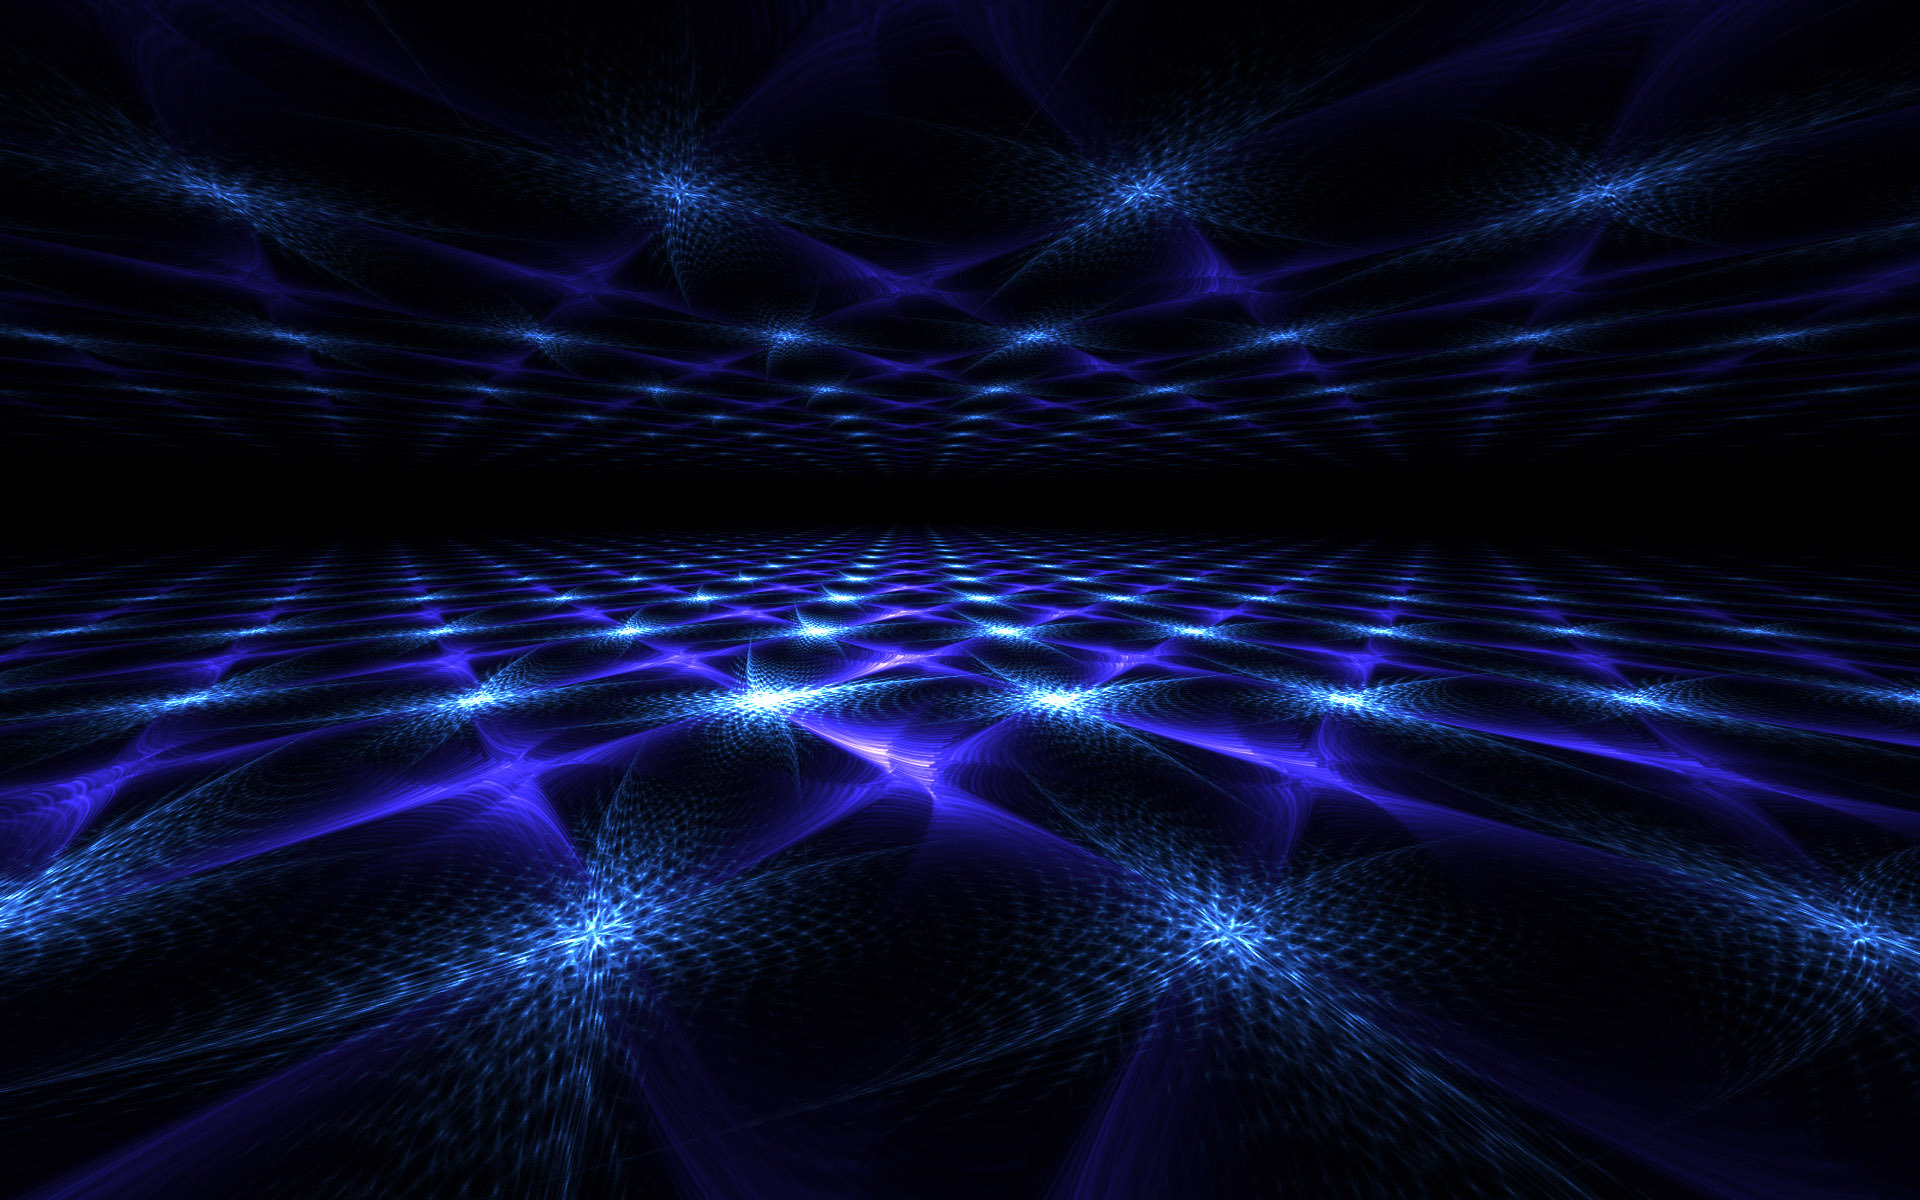 Abstract Blue Dance Flor Neon Backgrounds Neon Wallpaper